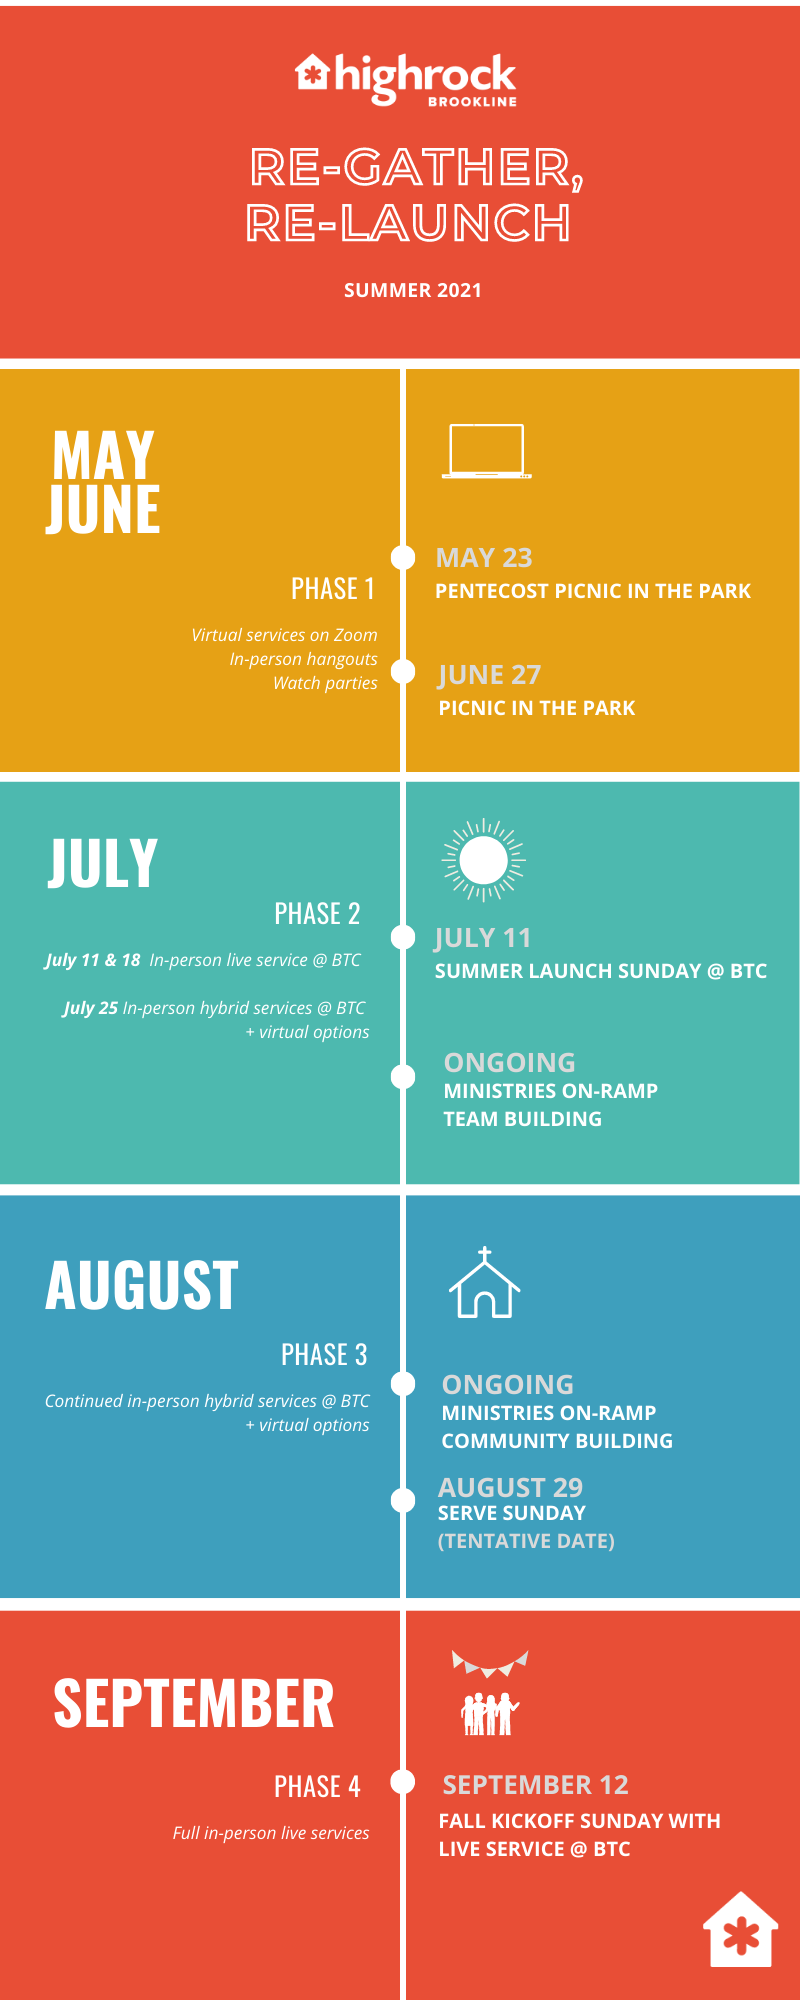 Re-gather, re-launch timeline